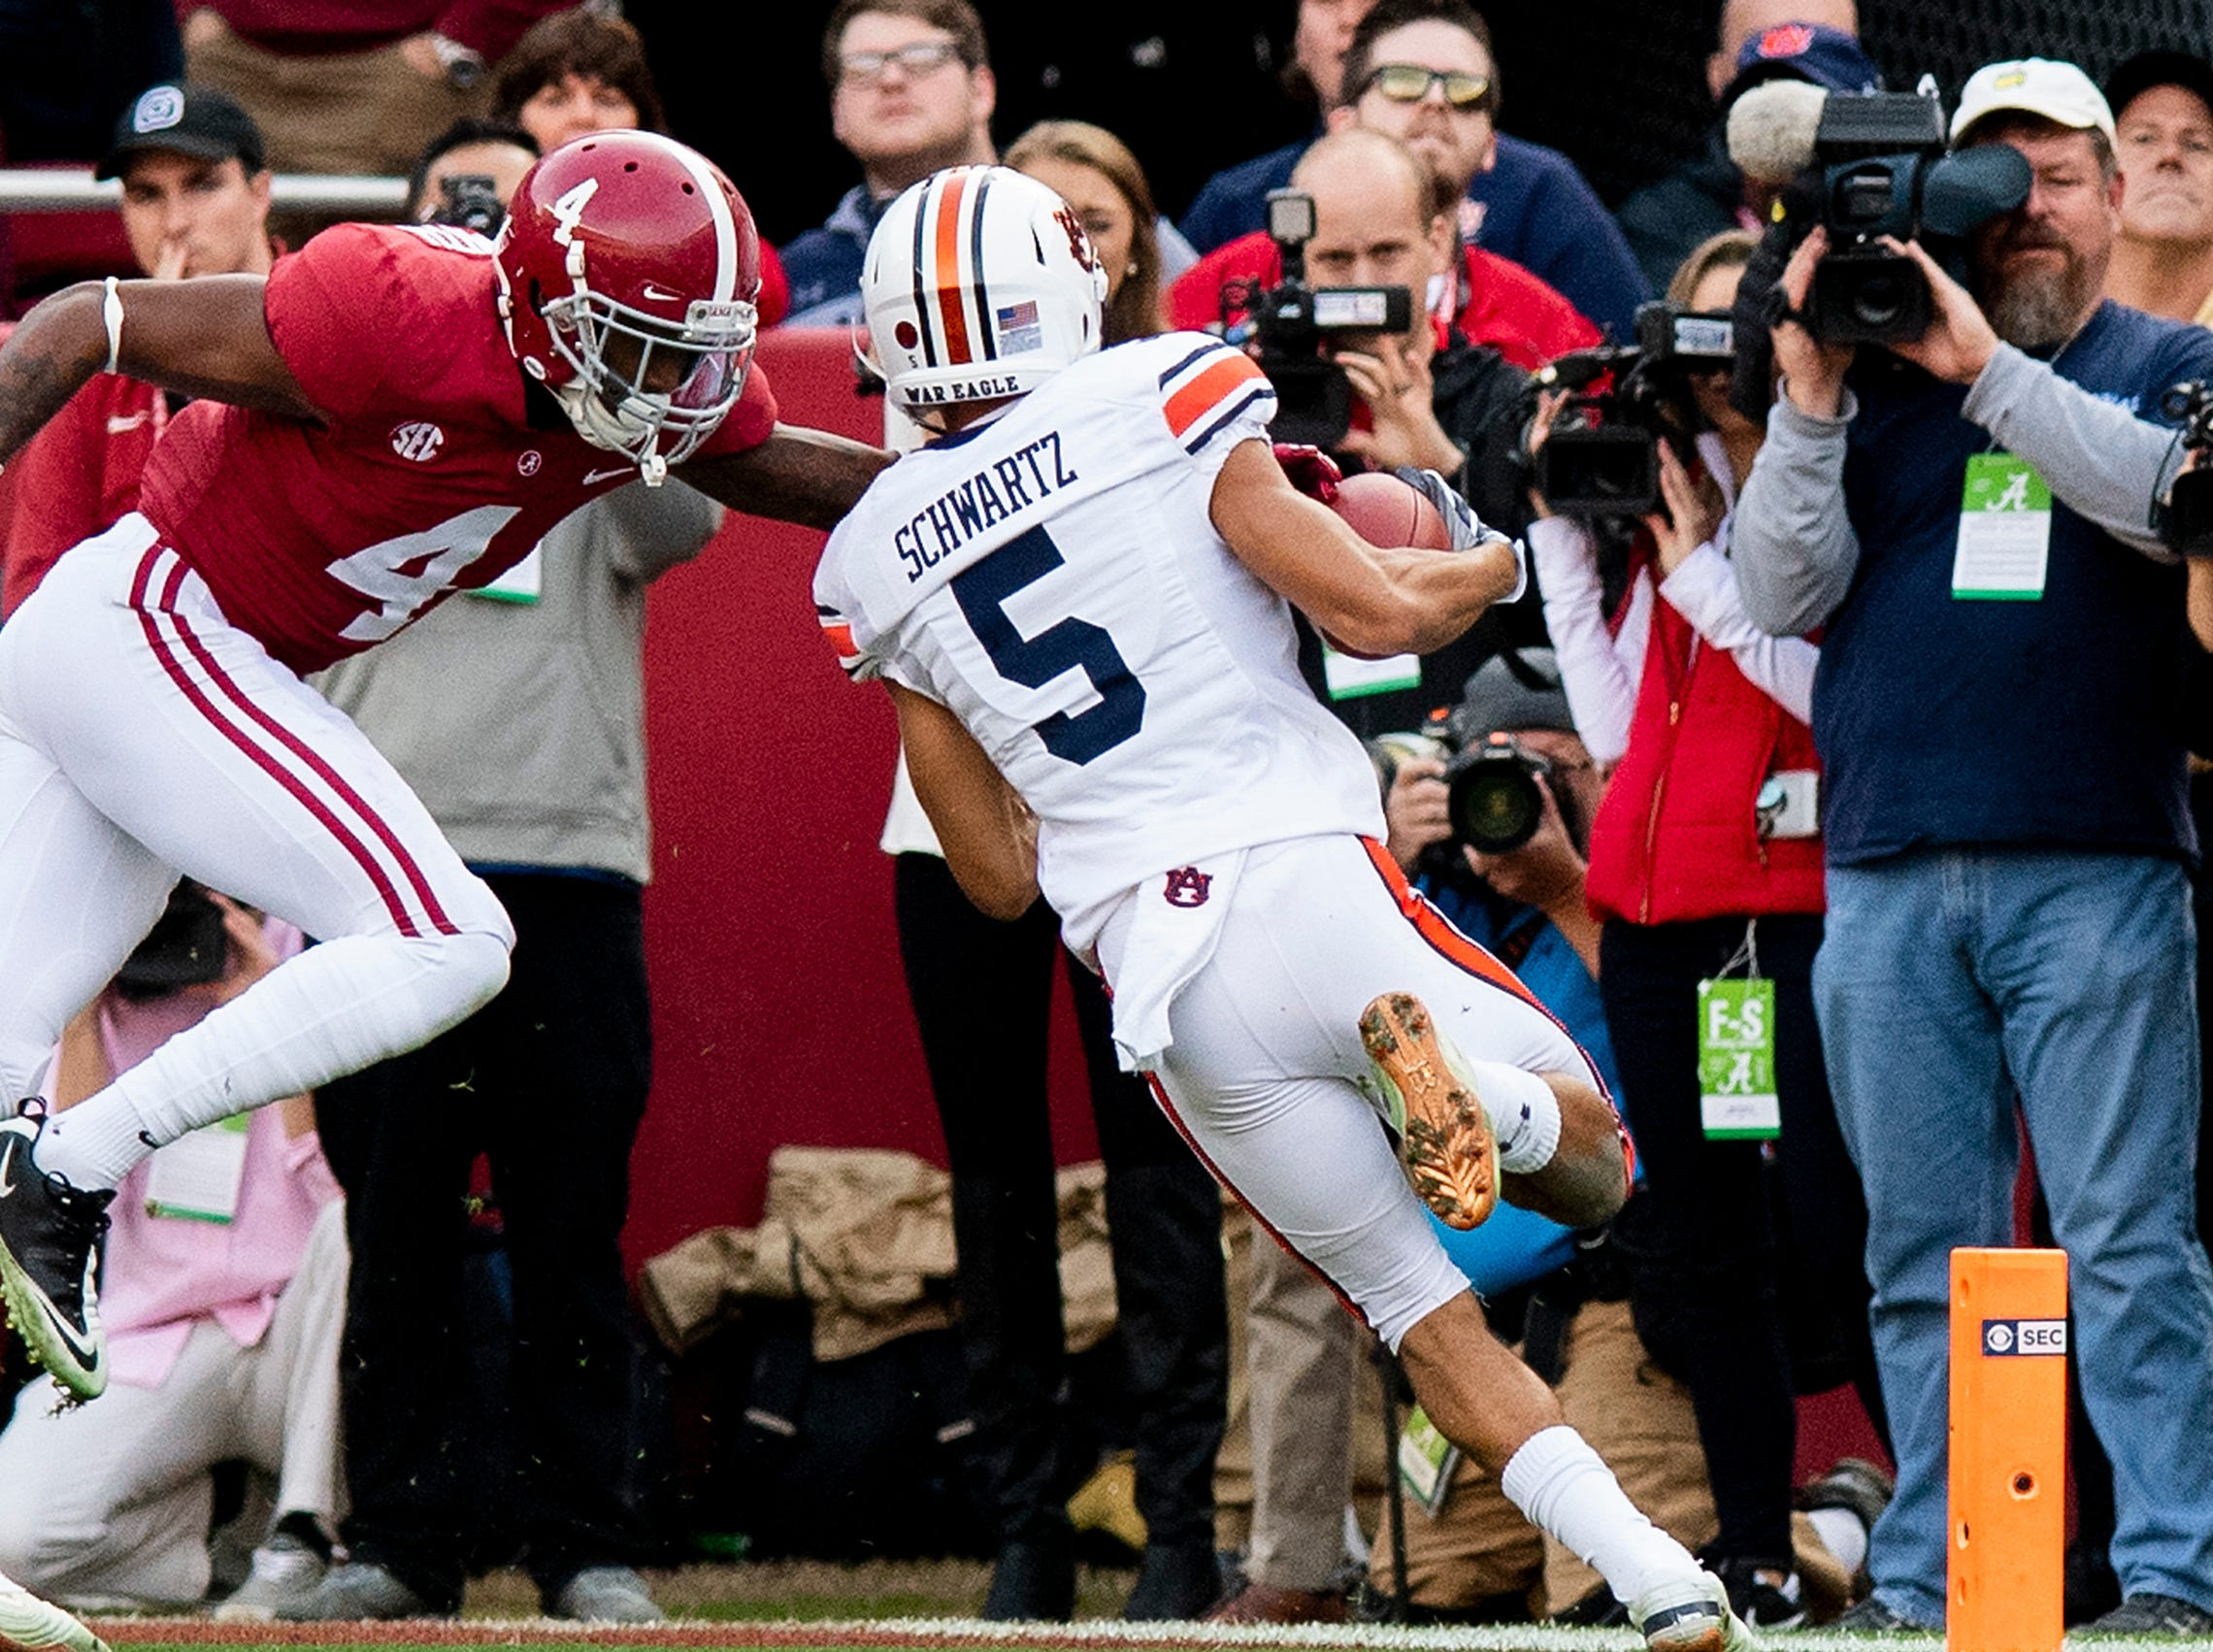 Auburn wide receiver Anthony Schwartz (5) scores a touchdown against Alabama defensive back Saivion Smith (4) in first half action during the Iron Bowl at Bryant-Denny Stadium in Tuscaloosa, Ala., on Saturday November 24, 2018.